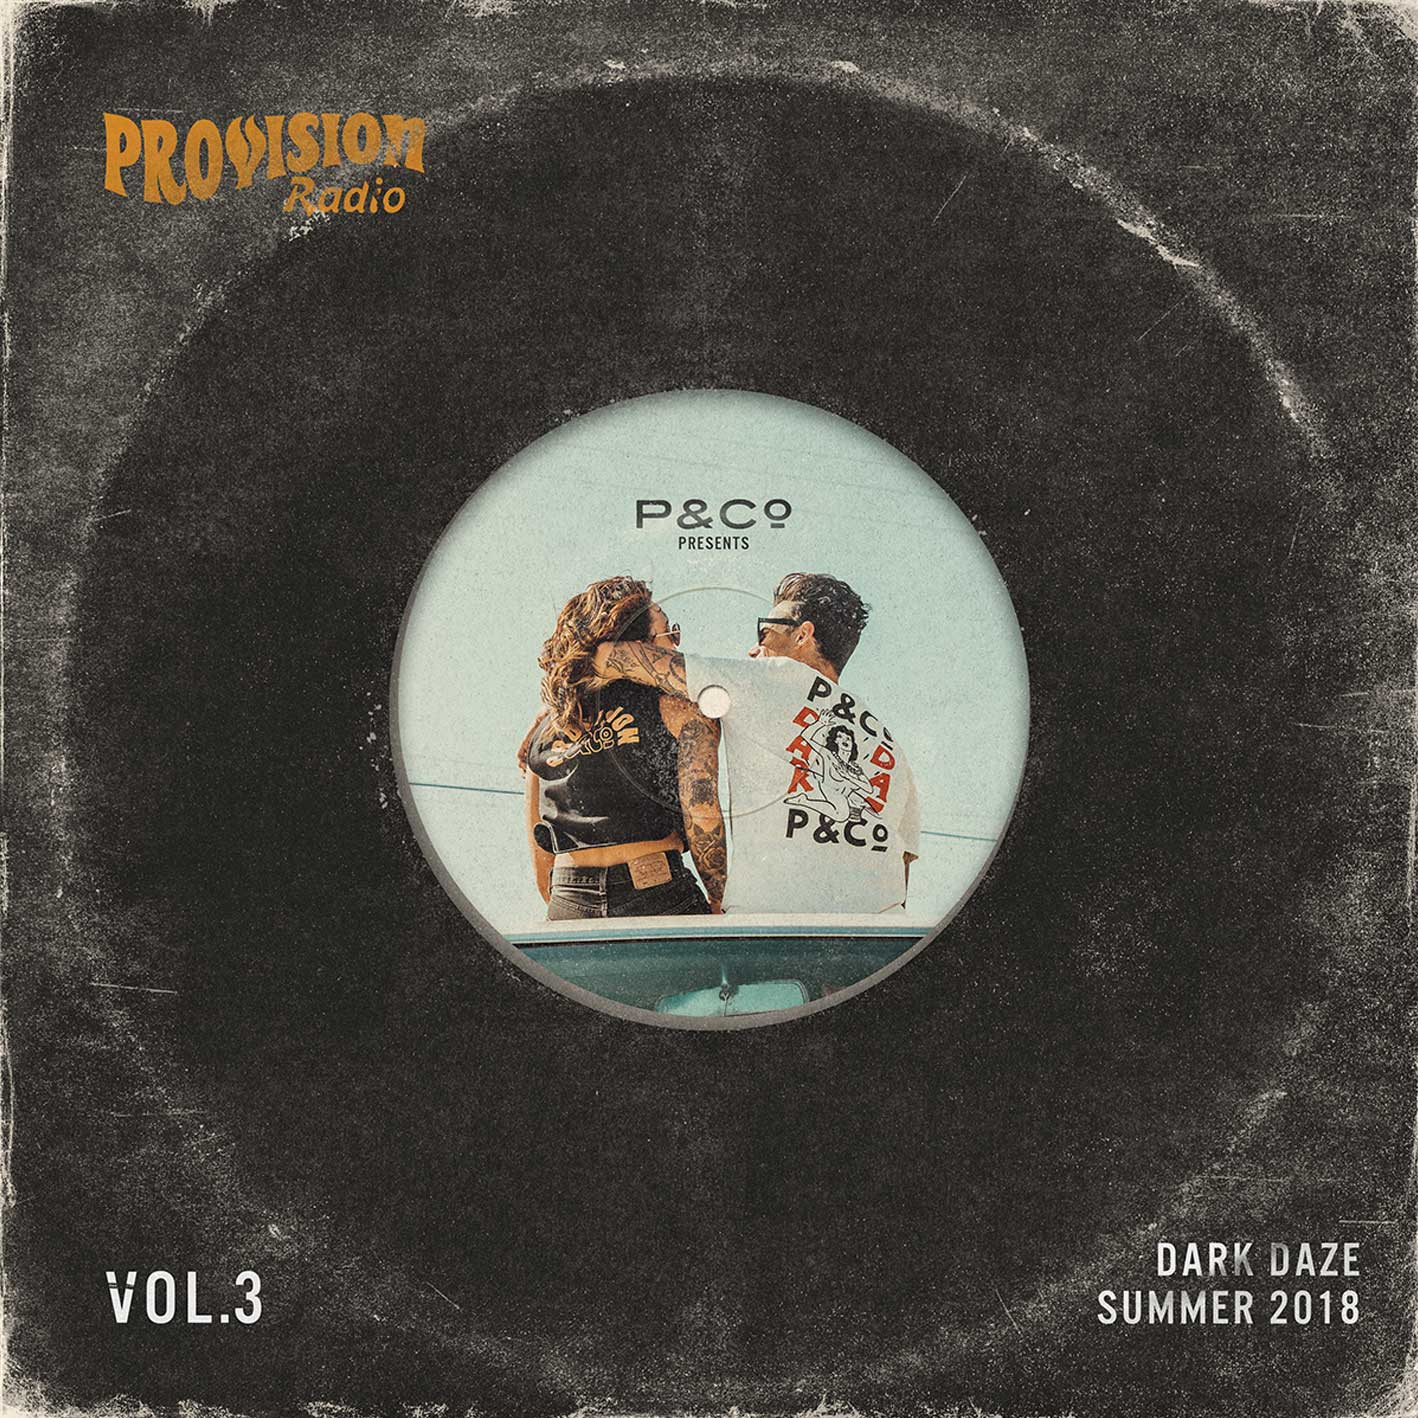 Provision & Co (P&Co) - Provision Radio Vol.3